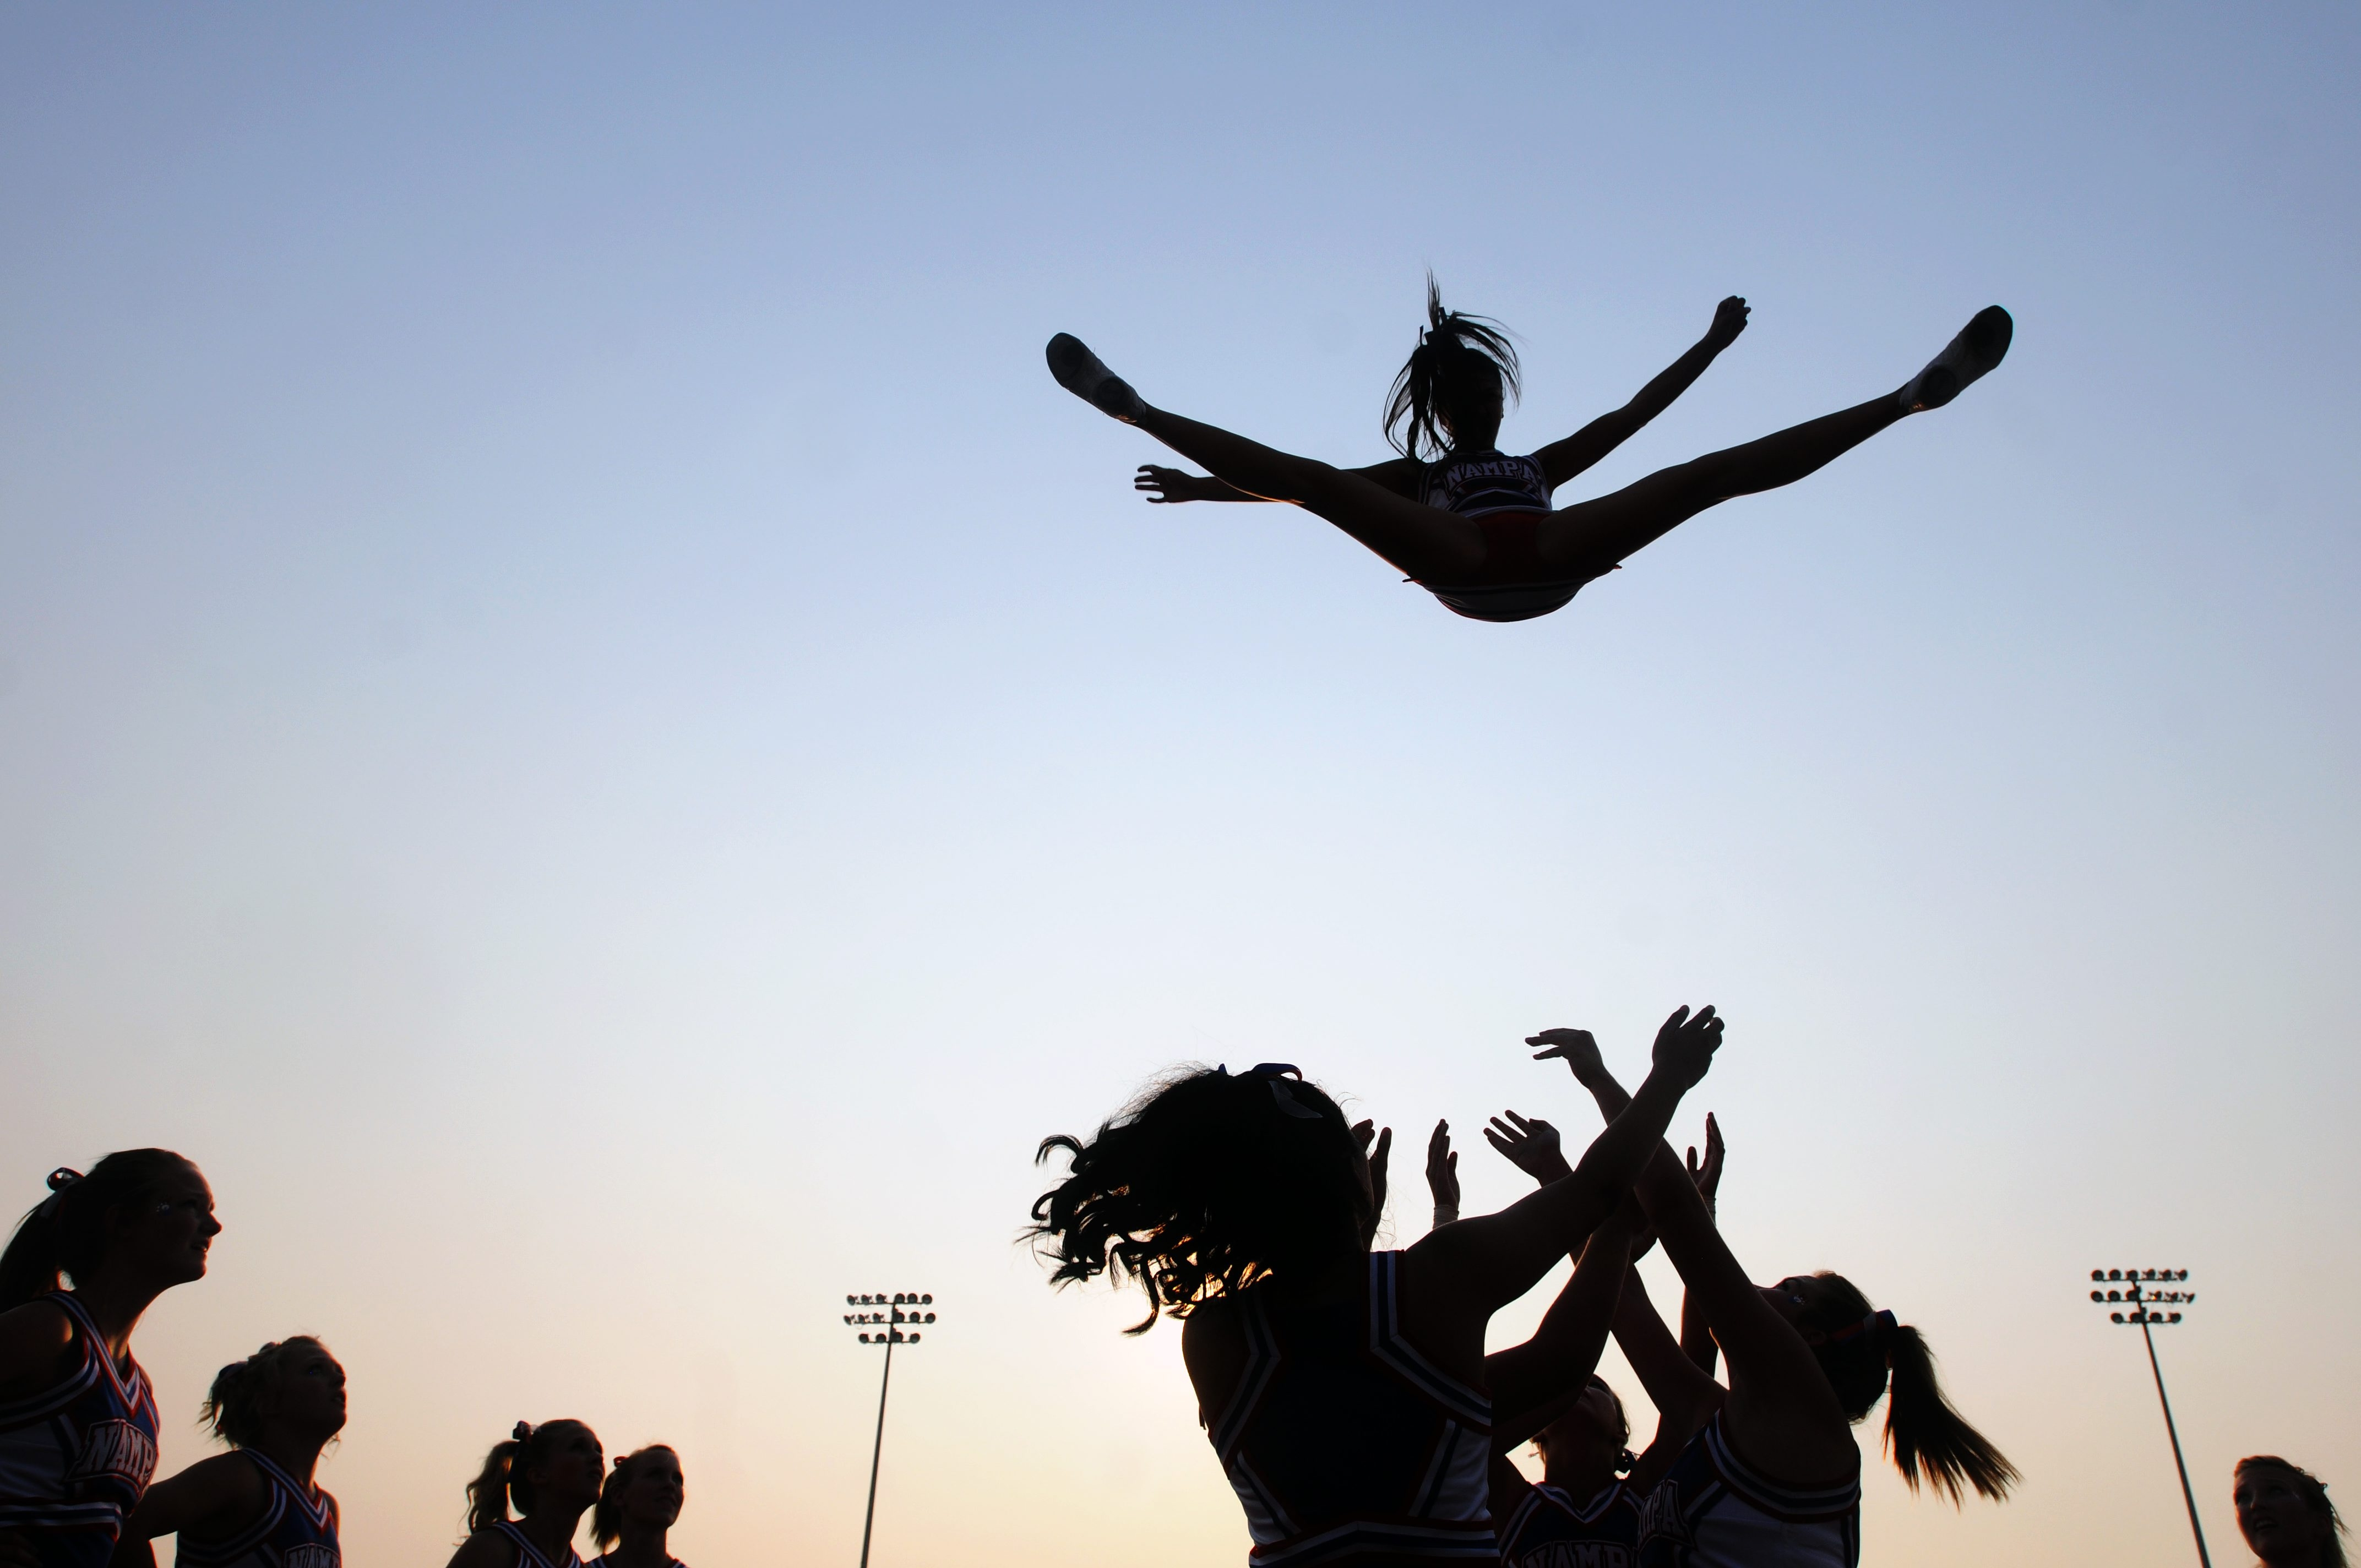 Research shows cheerleading poses by far the greatest risk of catastropic injury to young female participants of any sport.